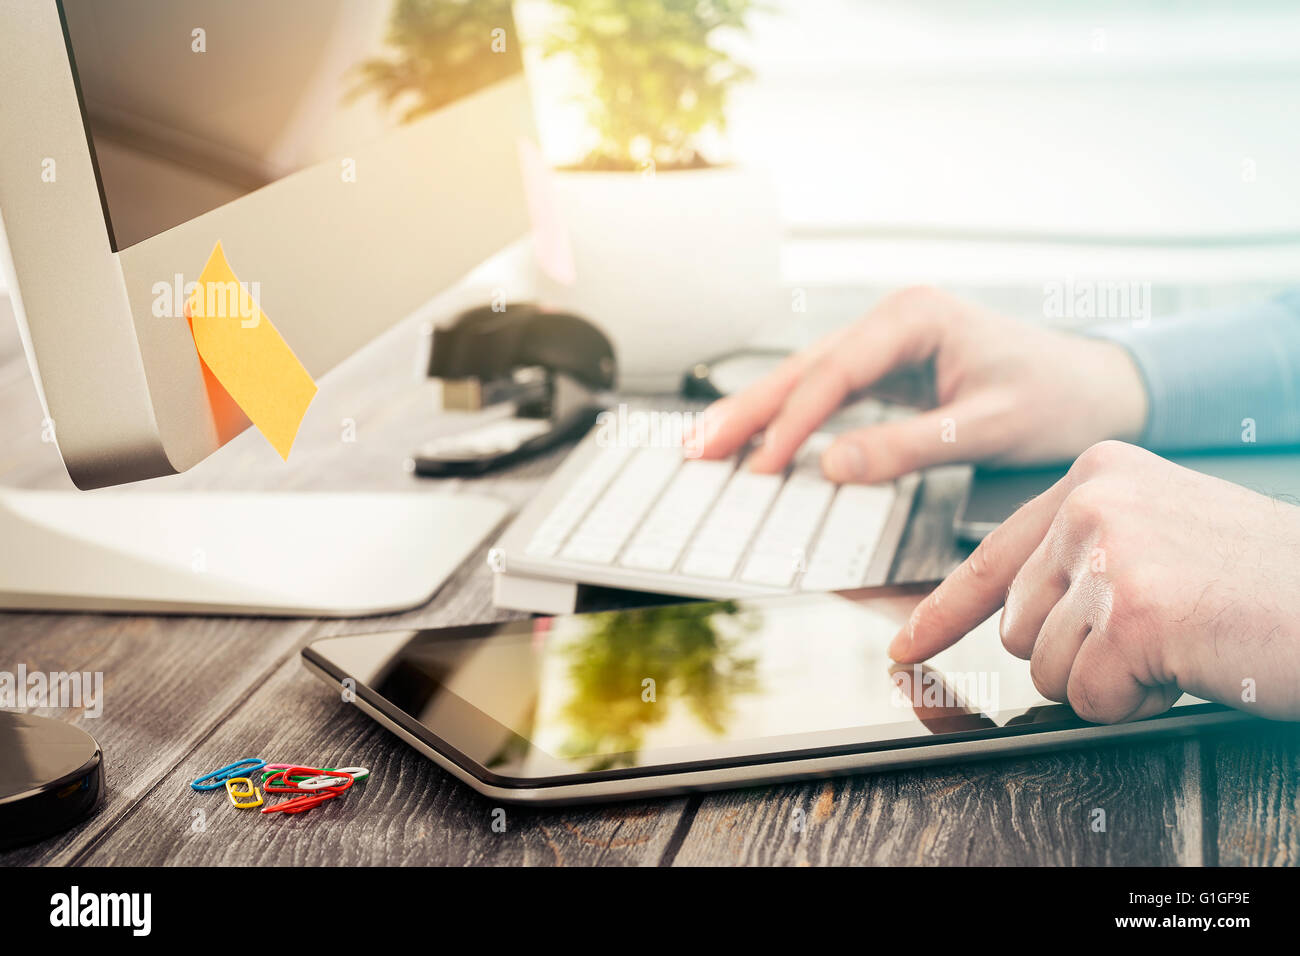 Designer hand working with digital tablet and computer. - Stock Image